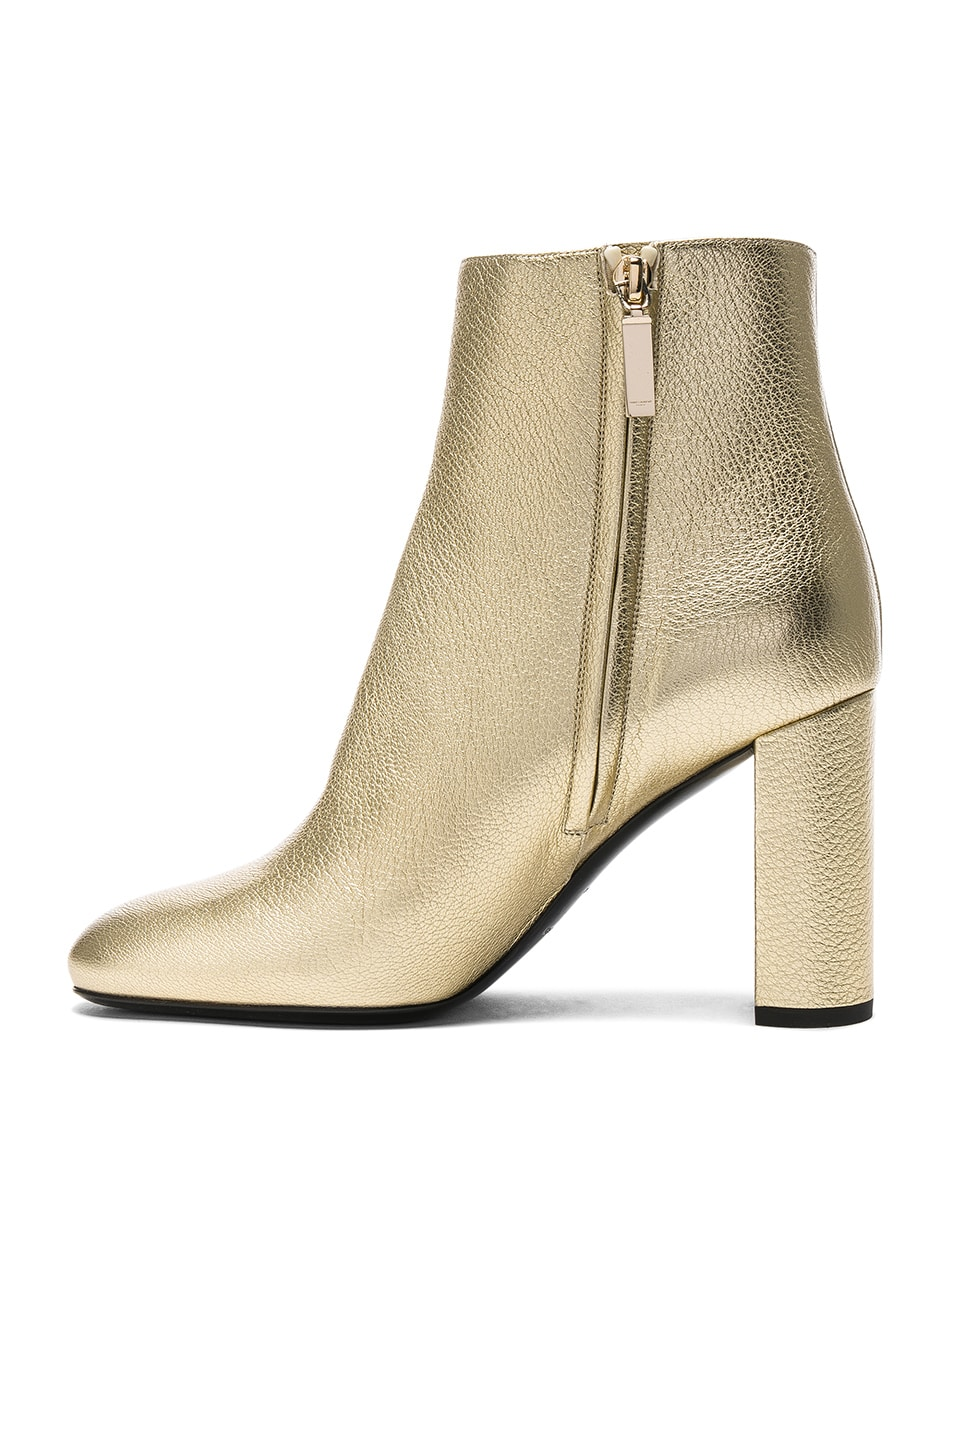 Image 5 of Saint Laurent Leather Loulou Boots in Pale Gold